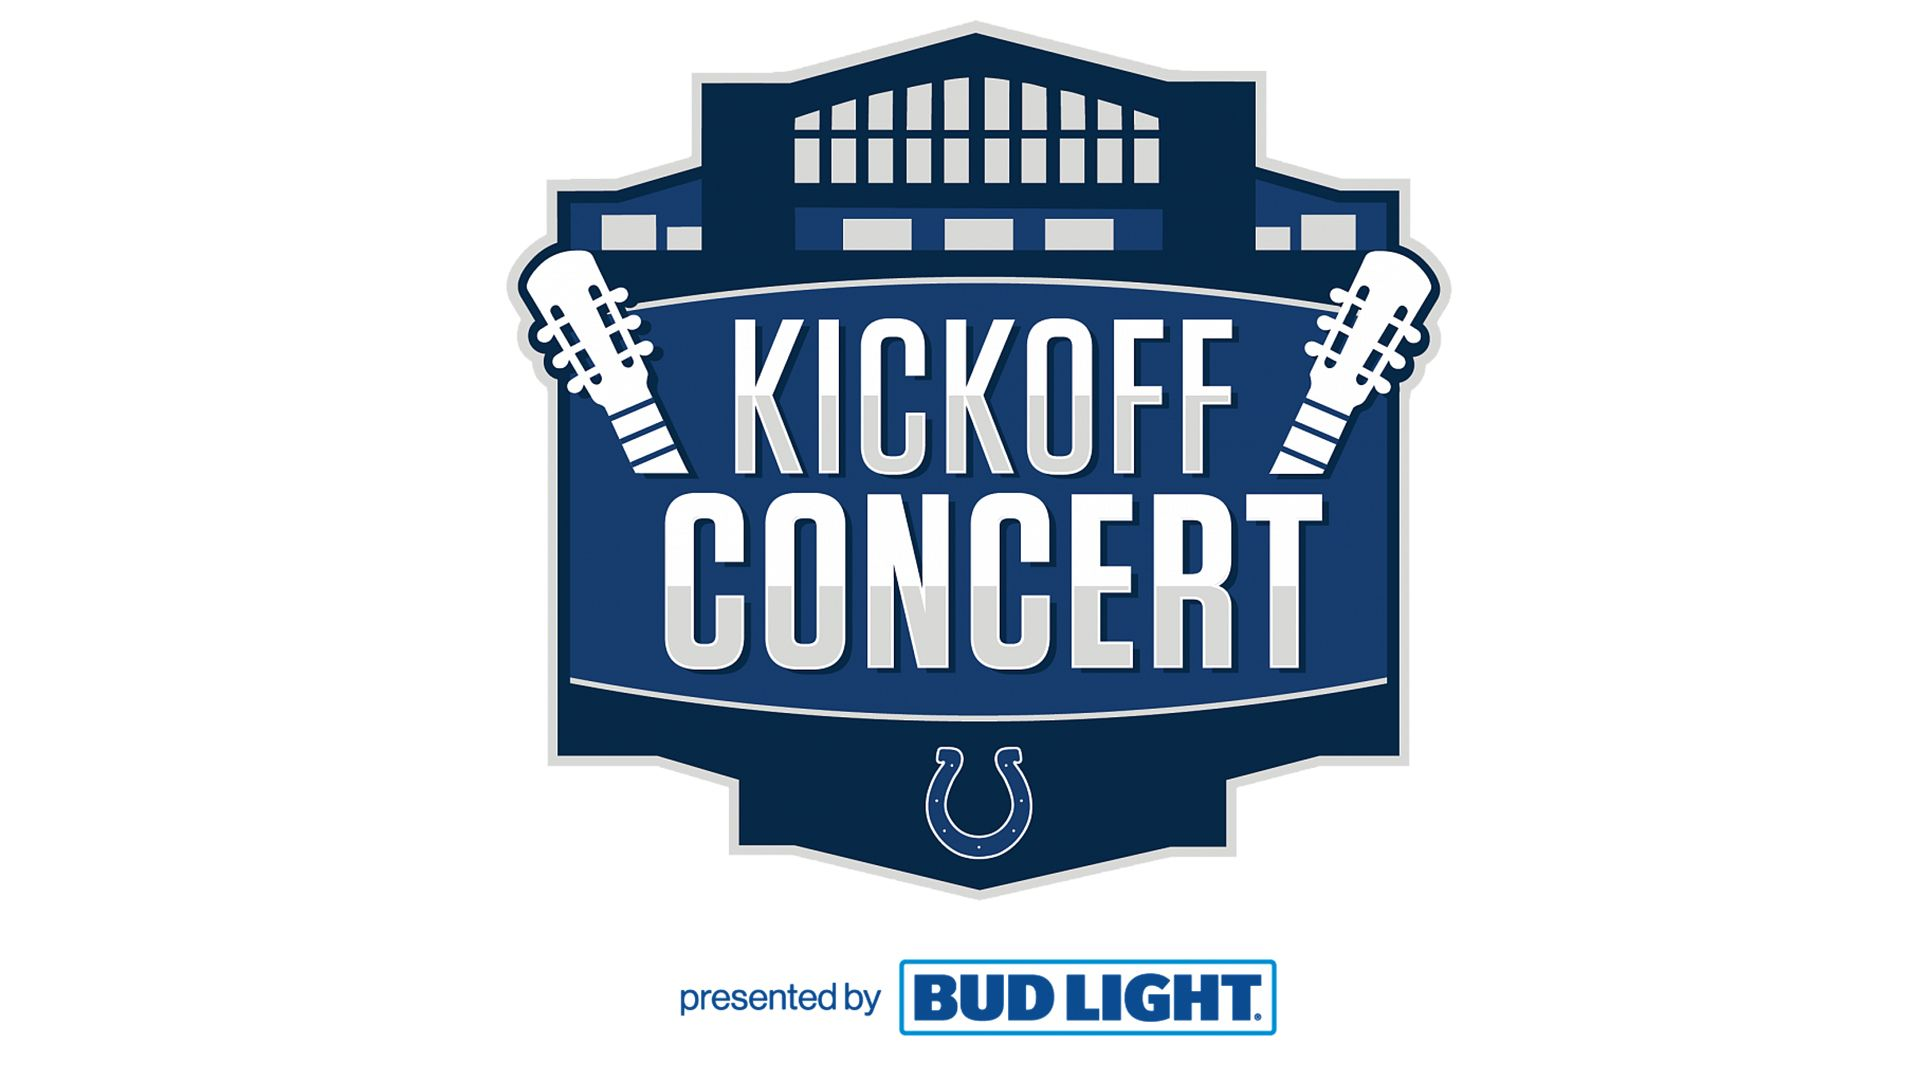 Kickoff Concert Presented By Bud Light